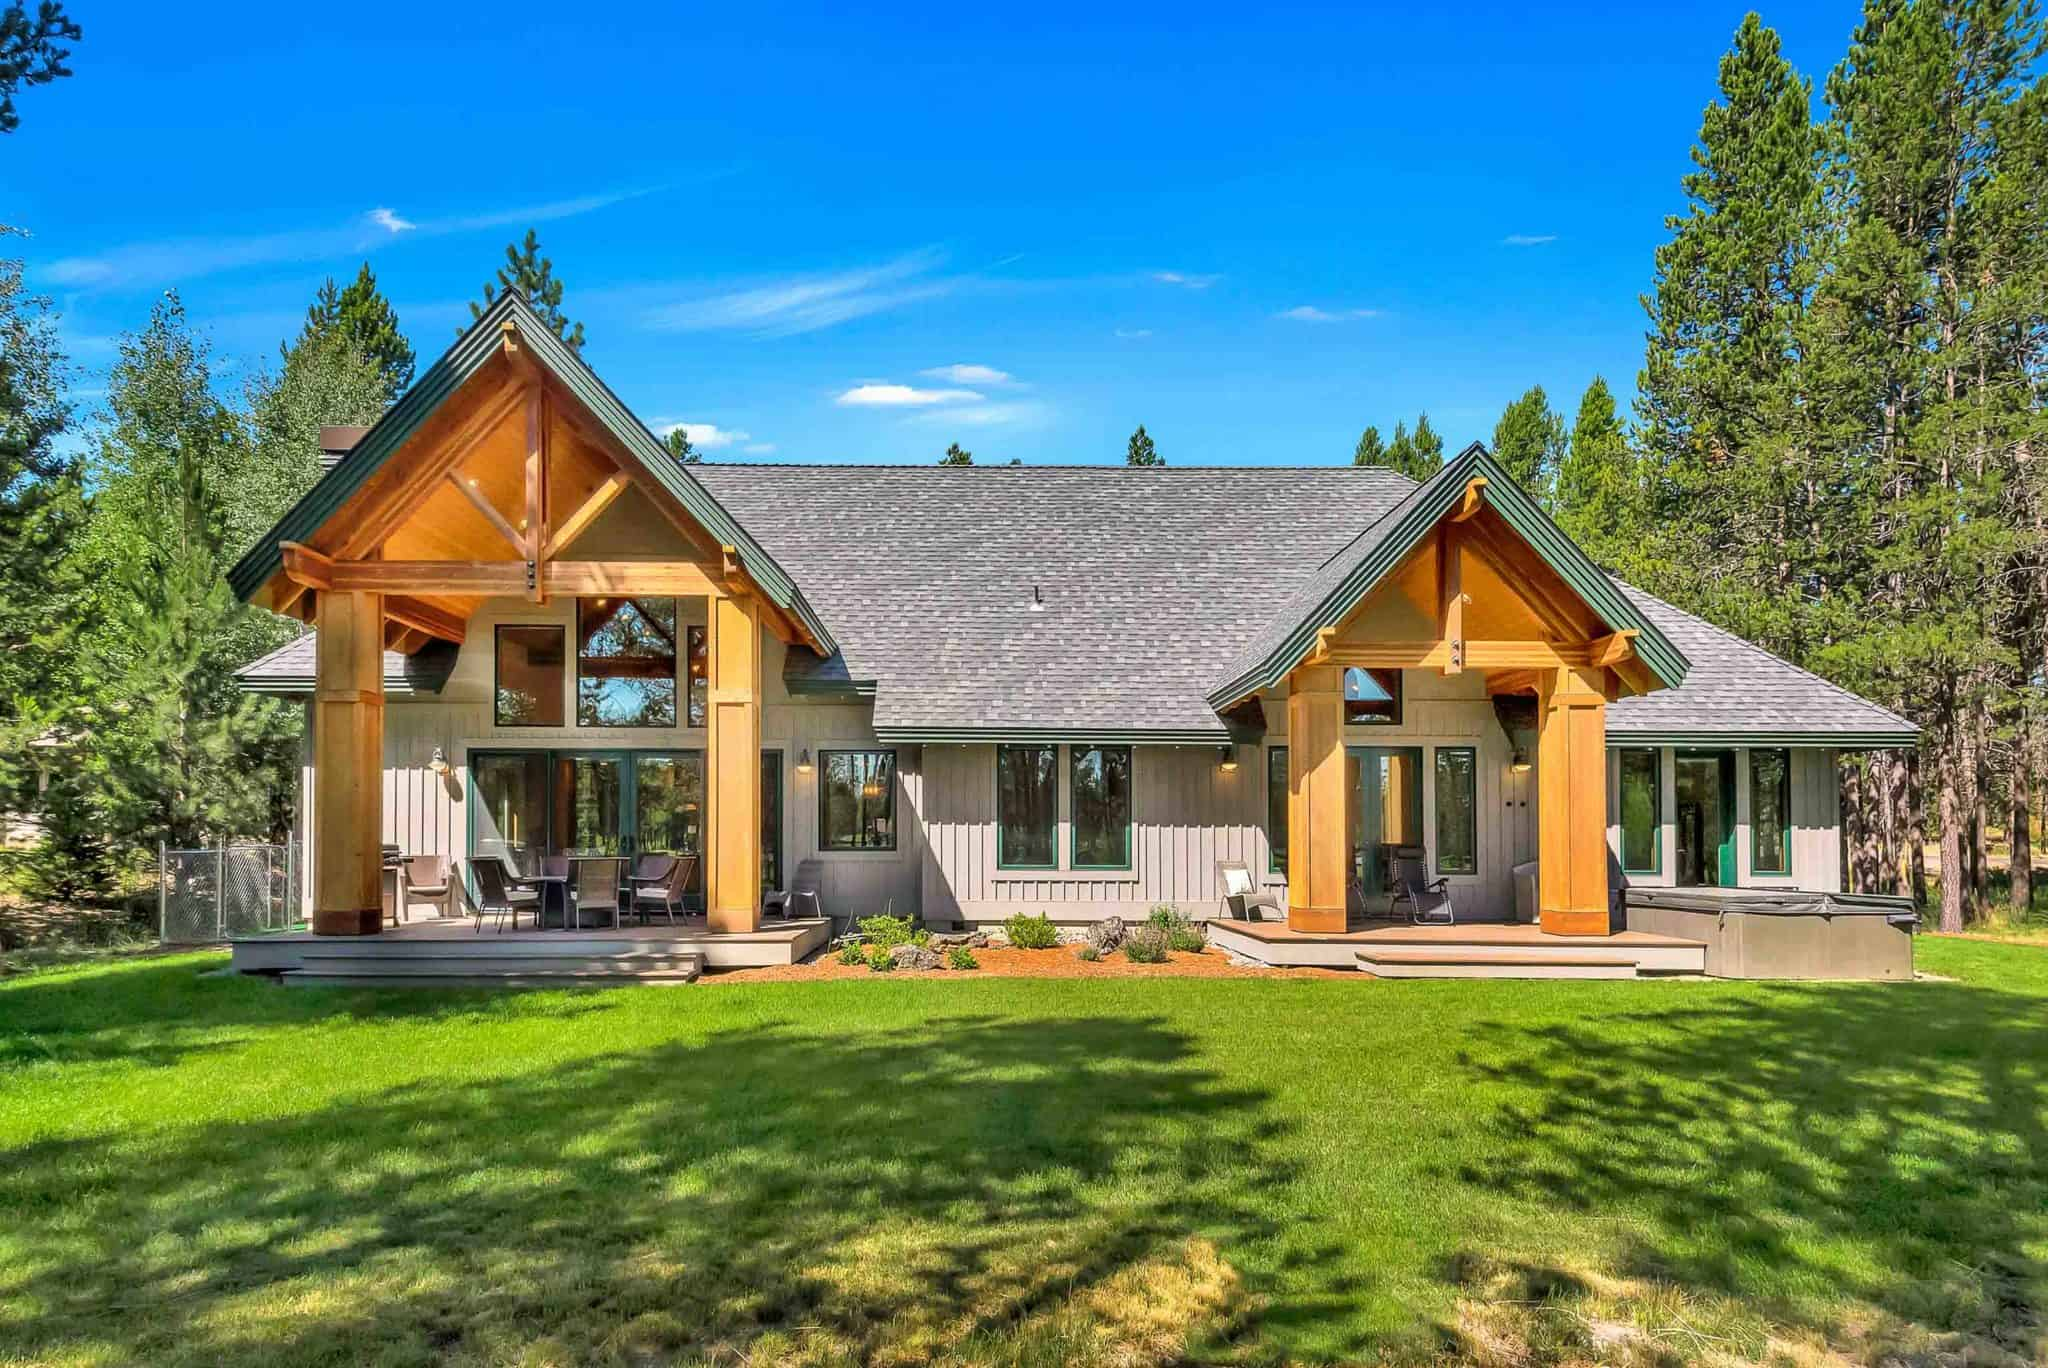 view of a luxury cabin with a grass front lawn